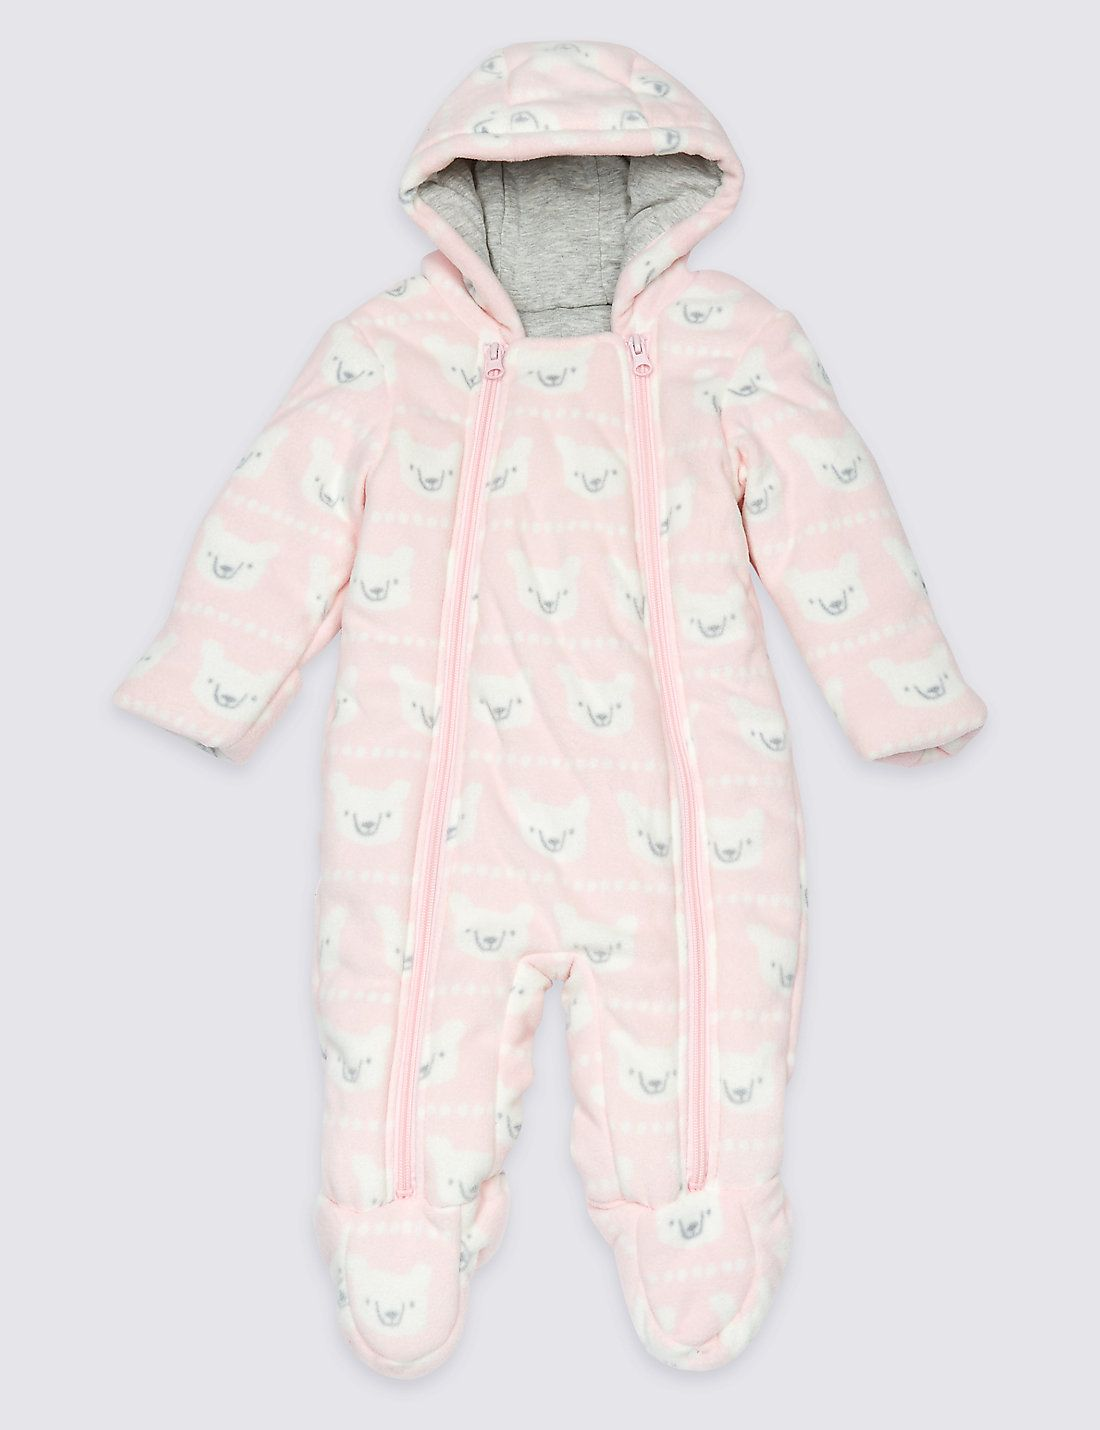 76d9bc2e2 All Over Print Pramsuit. See more at www.parentideal.co.uk marks-and ...